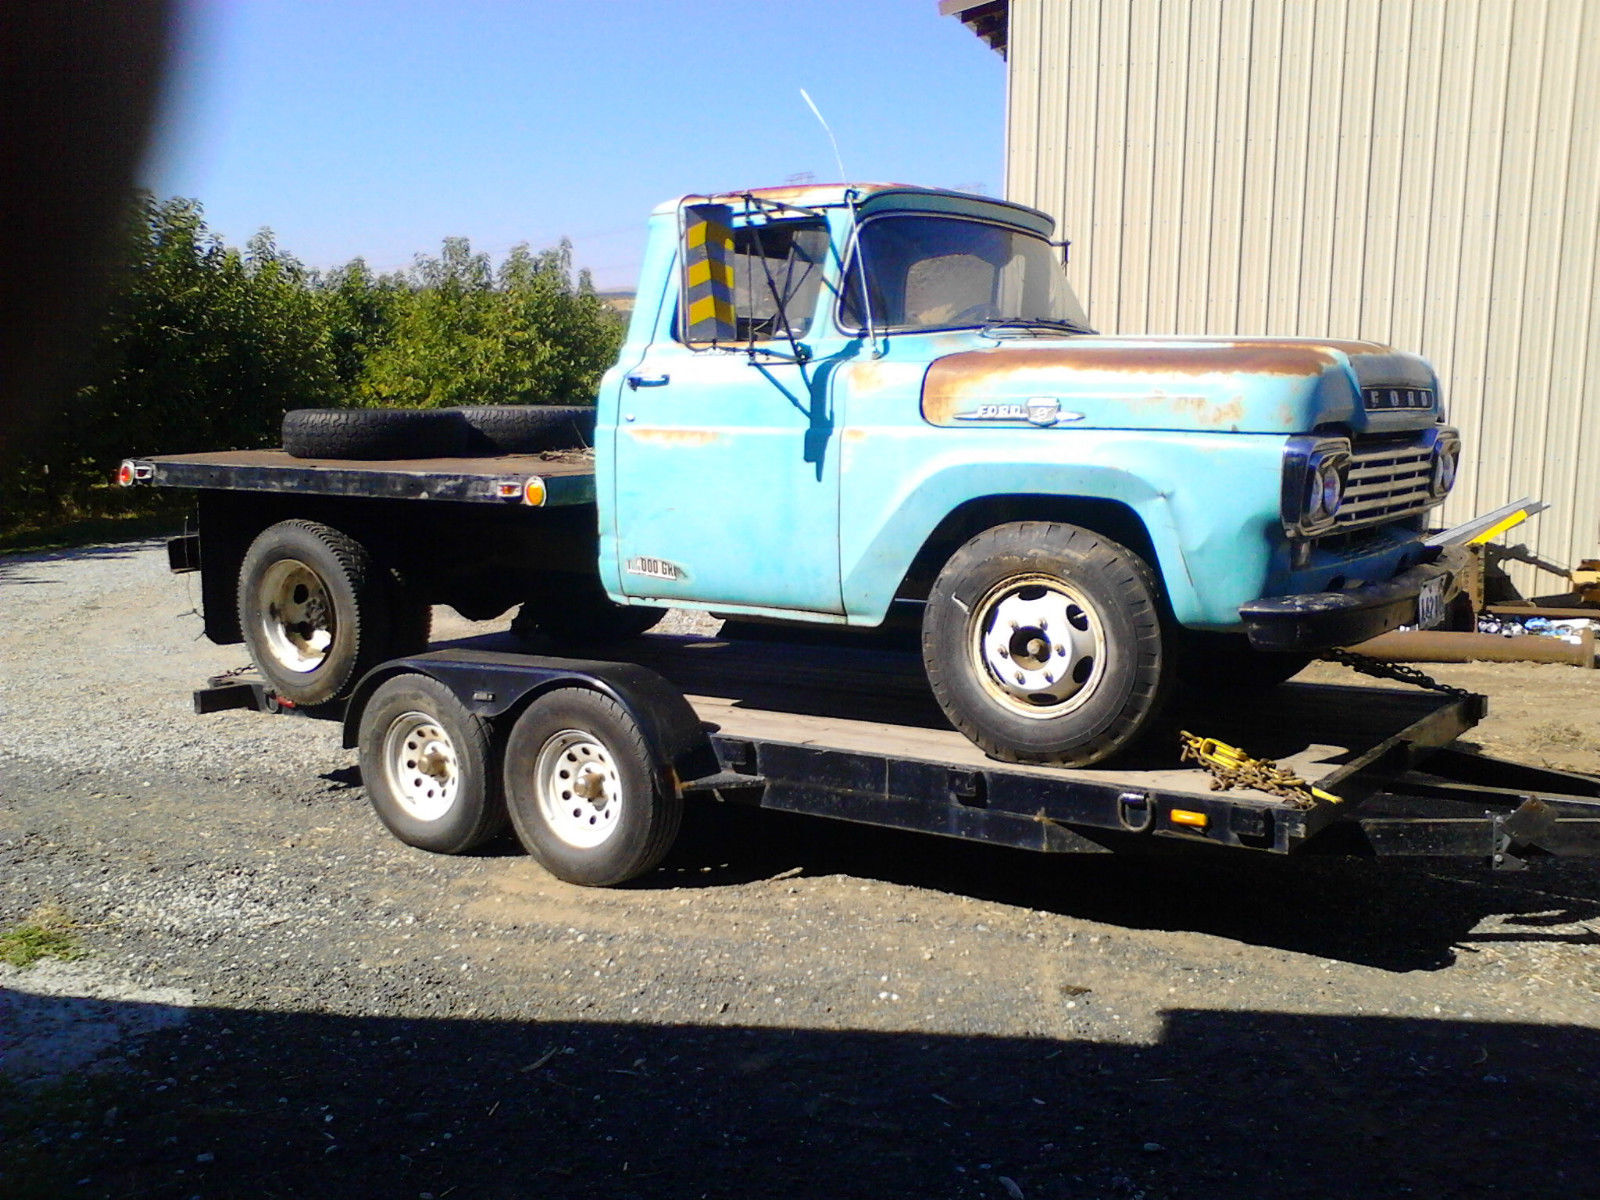 1959 Ford F350 Shorty Flatbed For Sale In East Wenatchee Washington United States For Sale Photos Technical Specifications Description